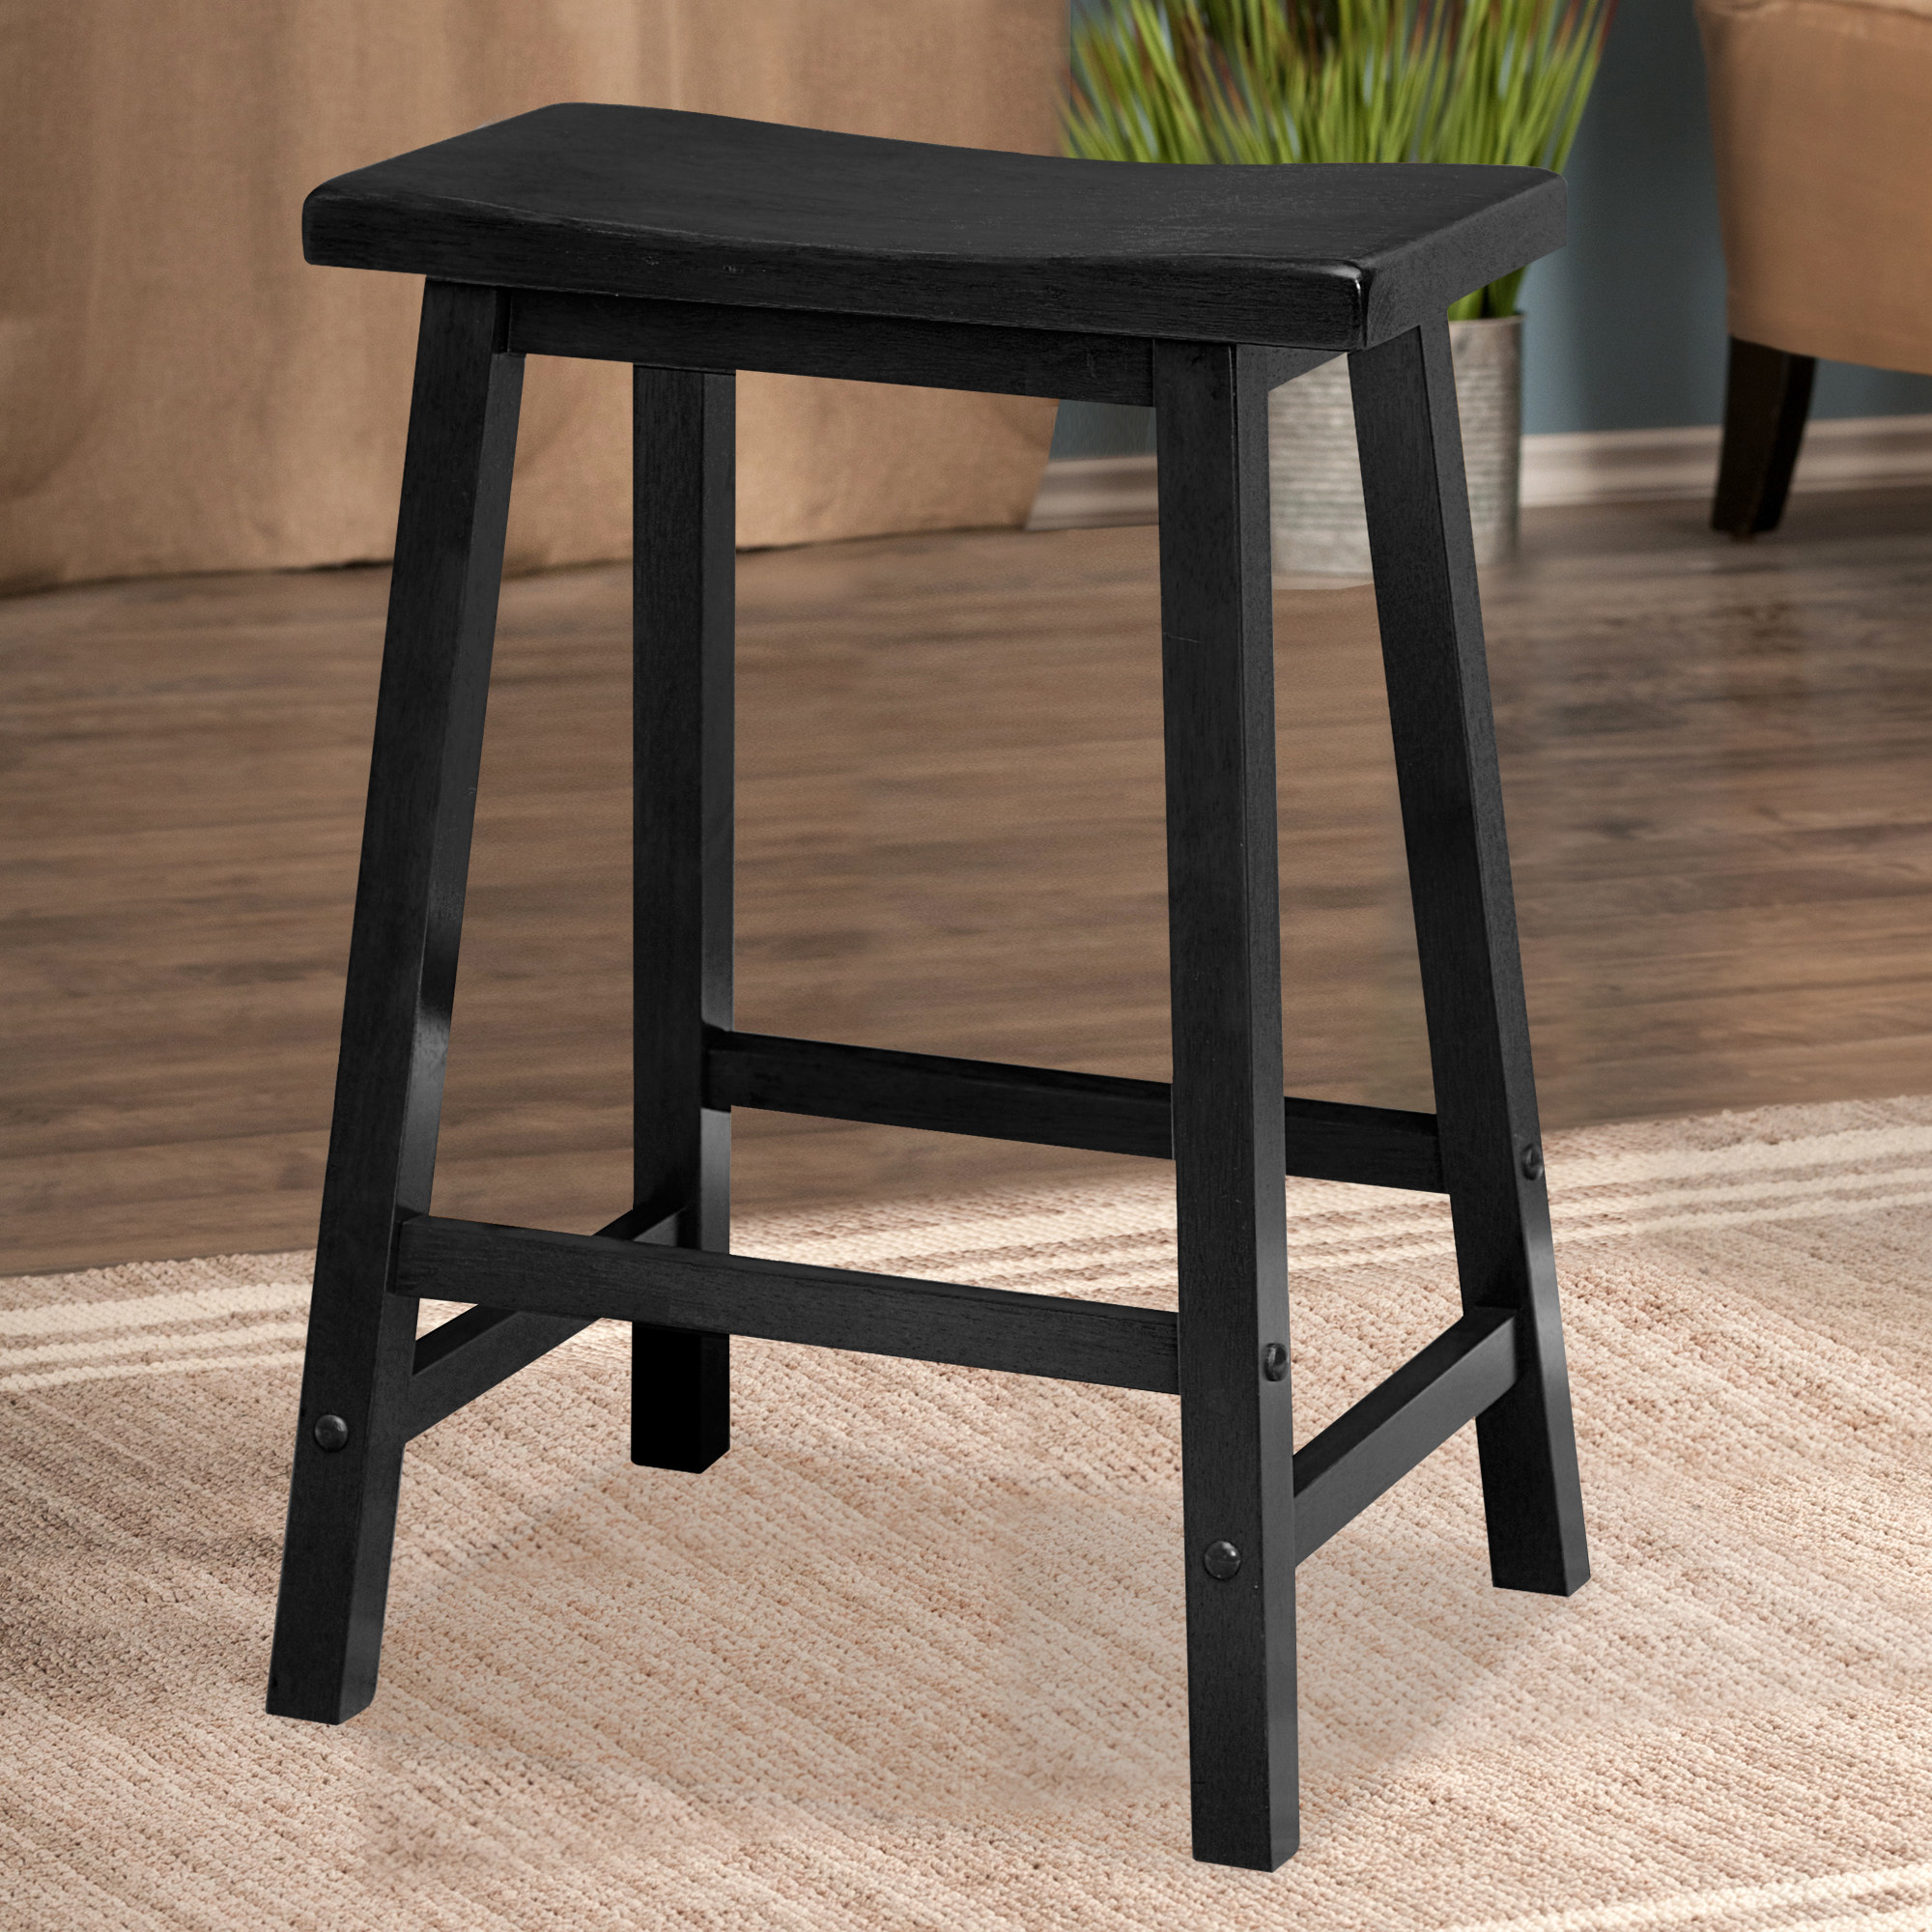 black stool in the middle of a room